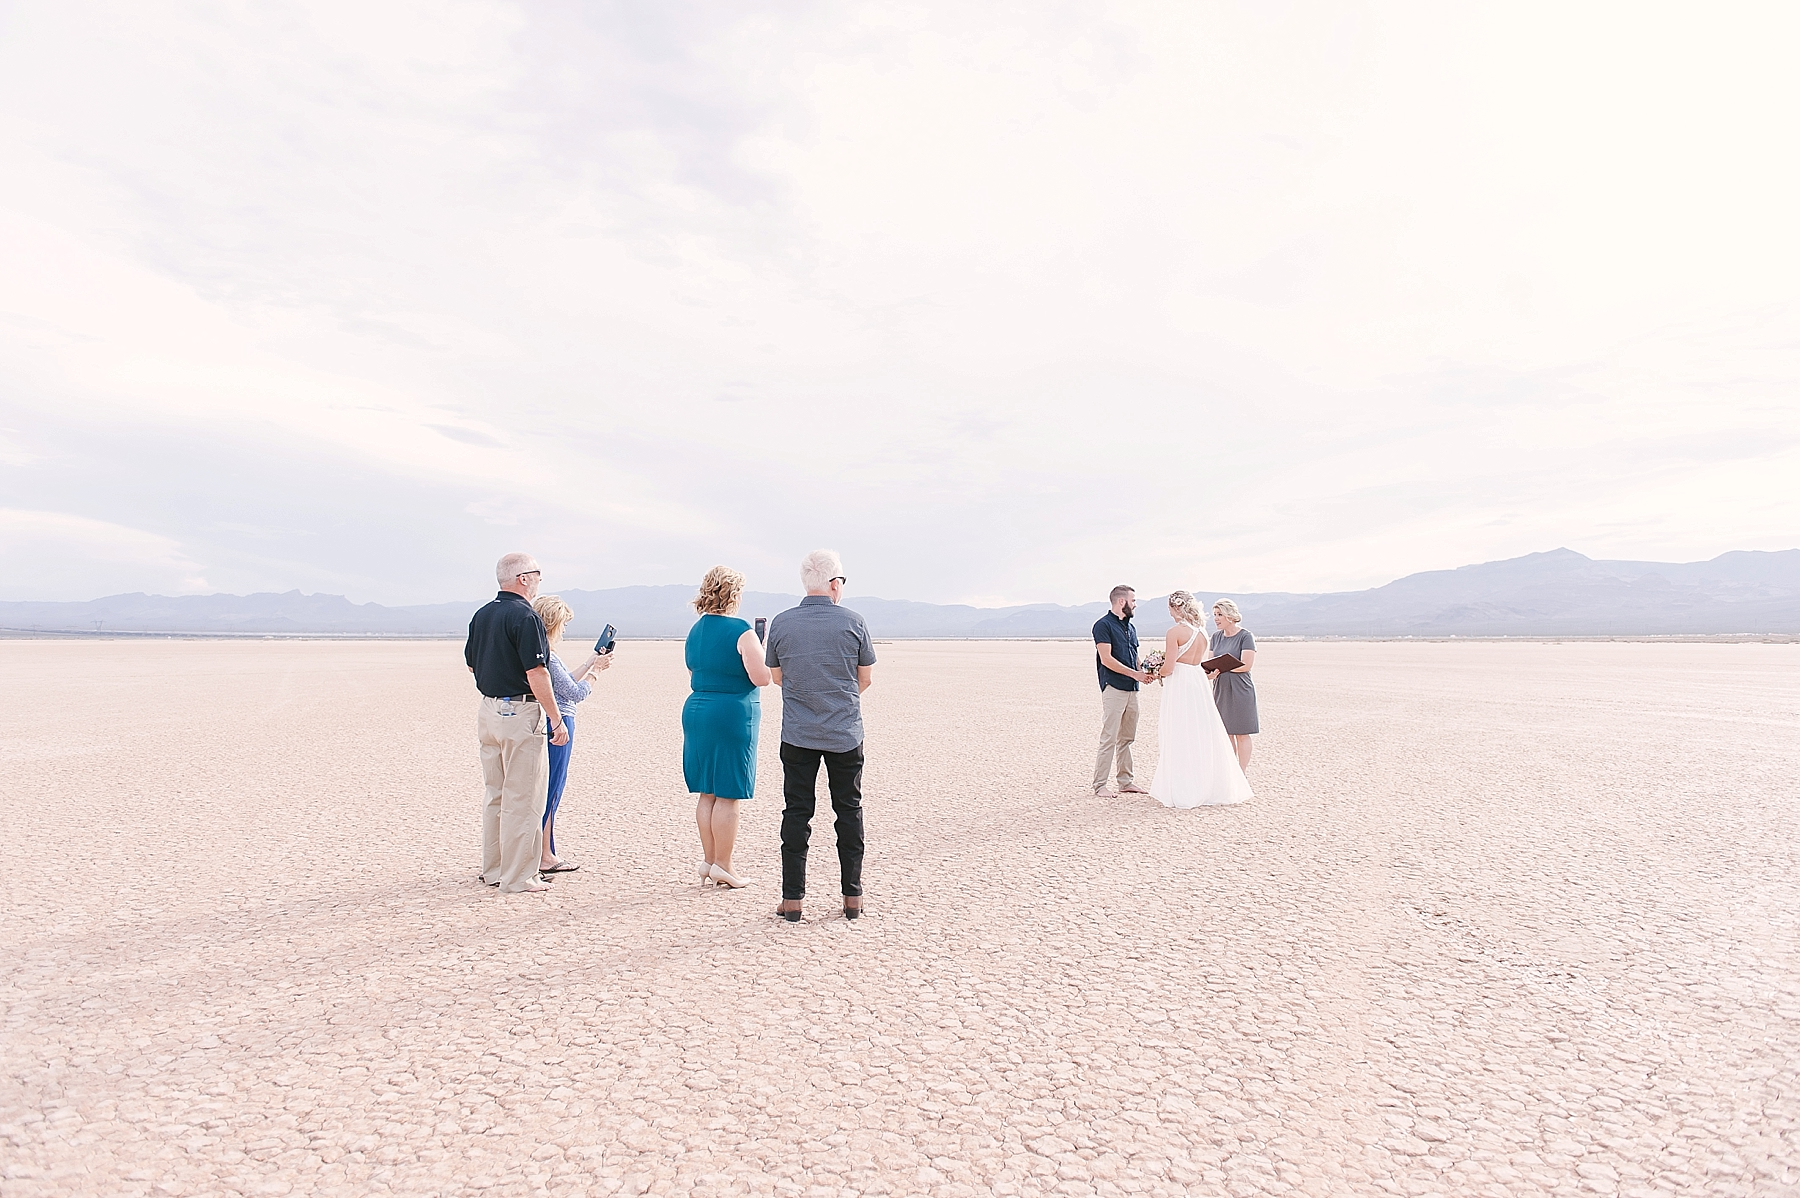 Las_Vegas_Dry_Lake_Bed_Wedding-05.jpg